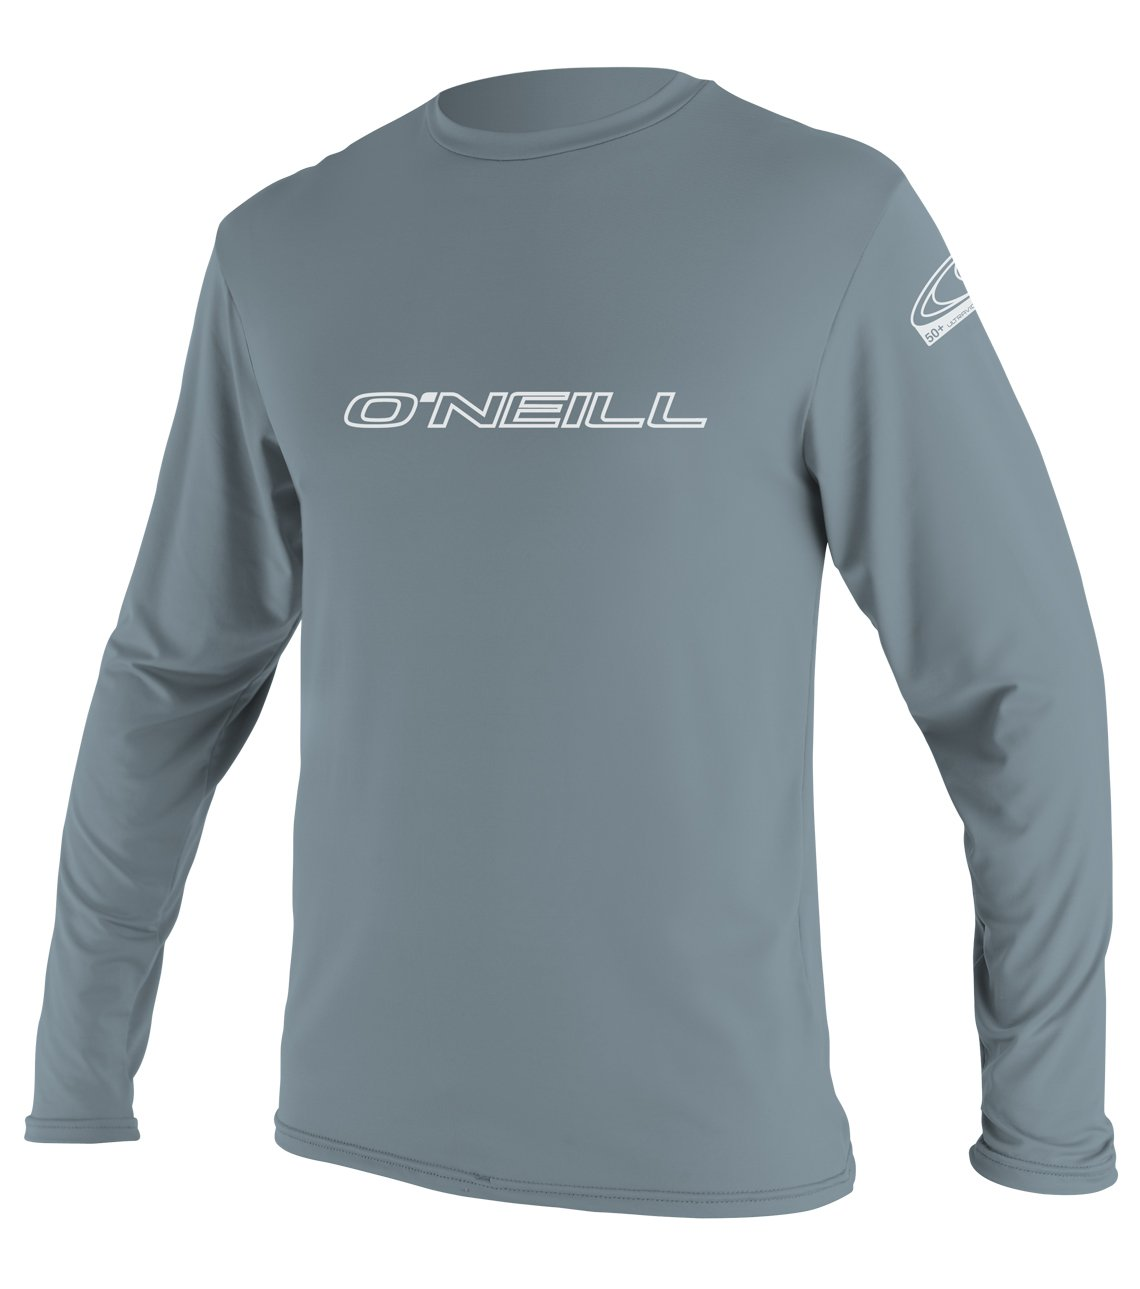 O'Neill Wetsuits Men's Basic Skins UPF 50+ Long Sleeve Sun Shirt, Dusty Blue, Large by O'Neill Wetsuits